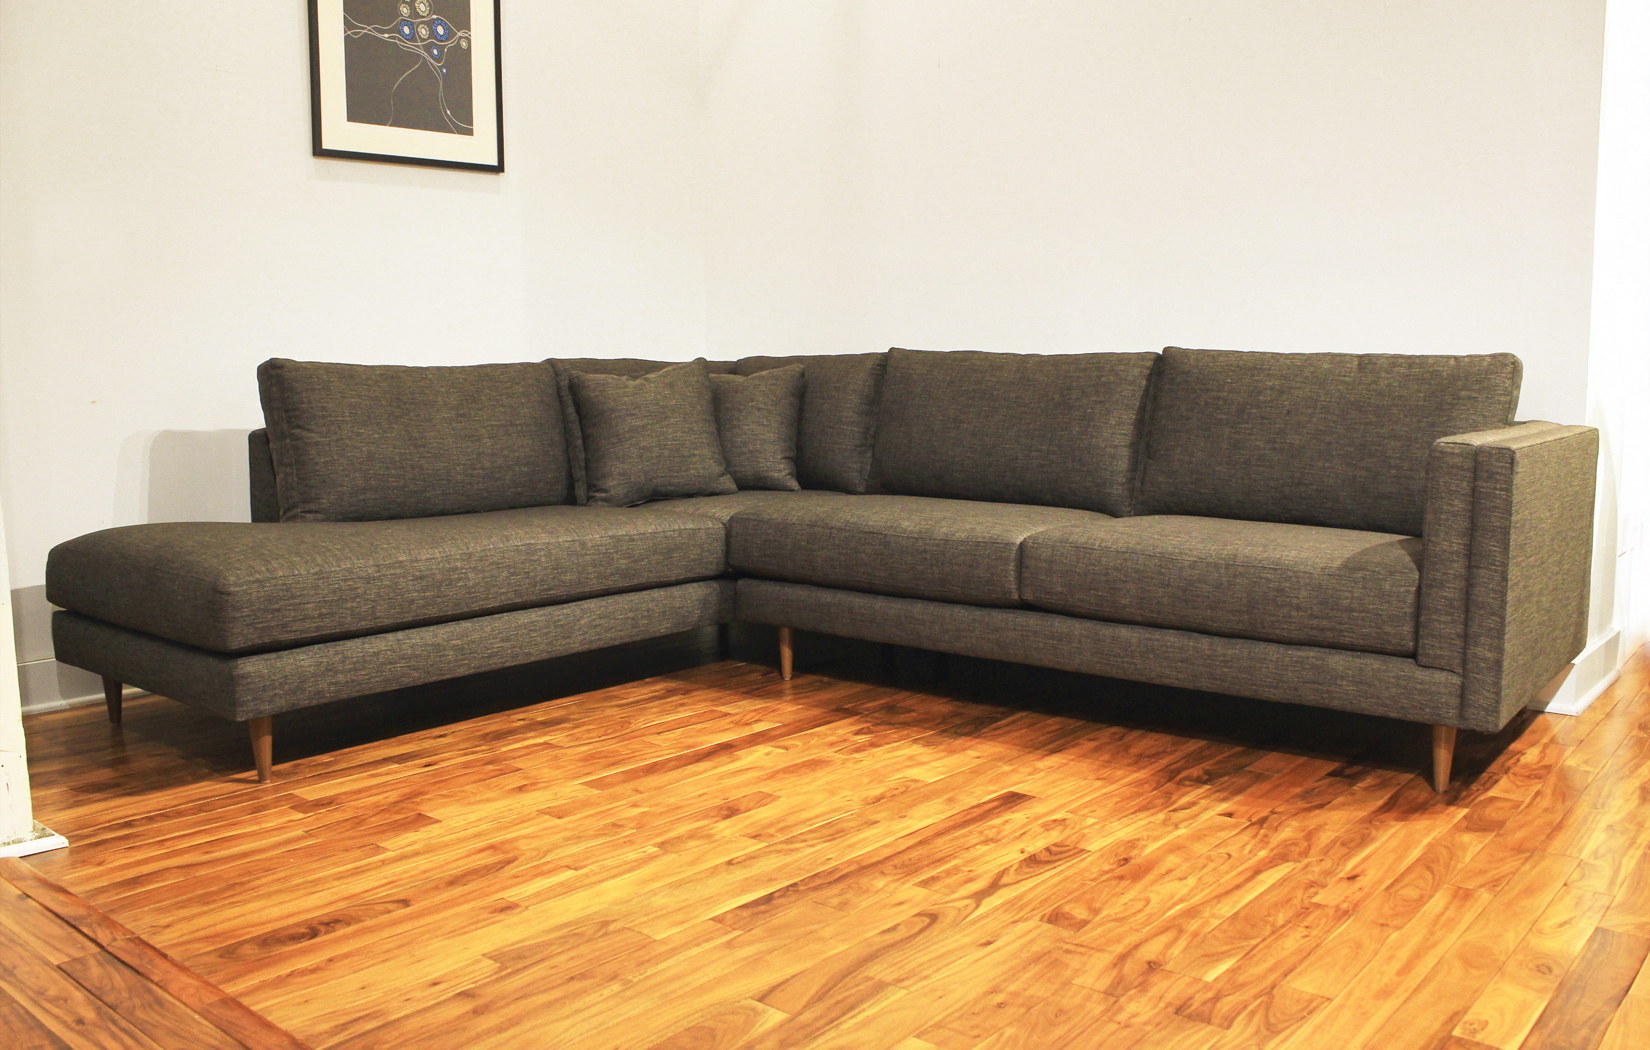 The Caulfield Sectional